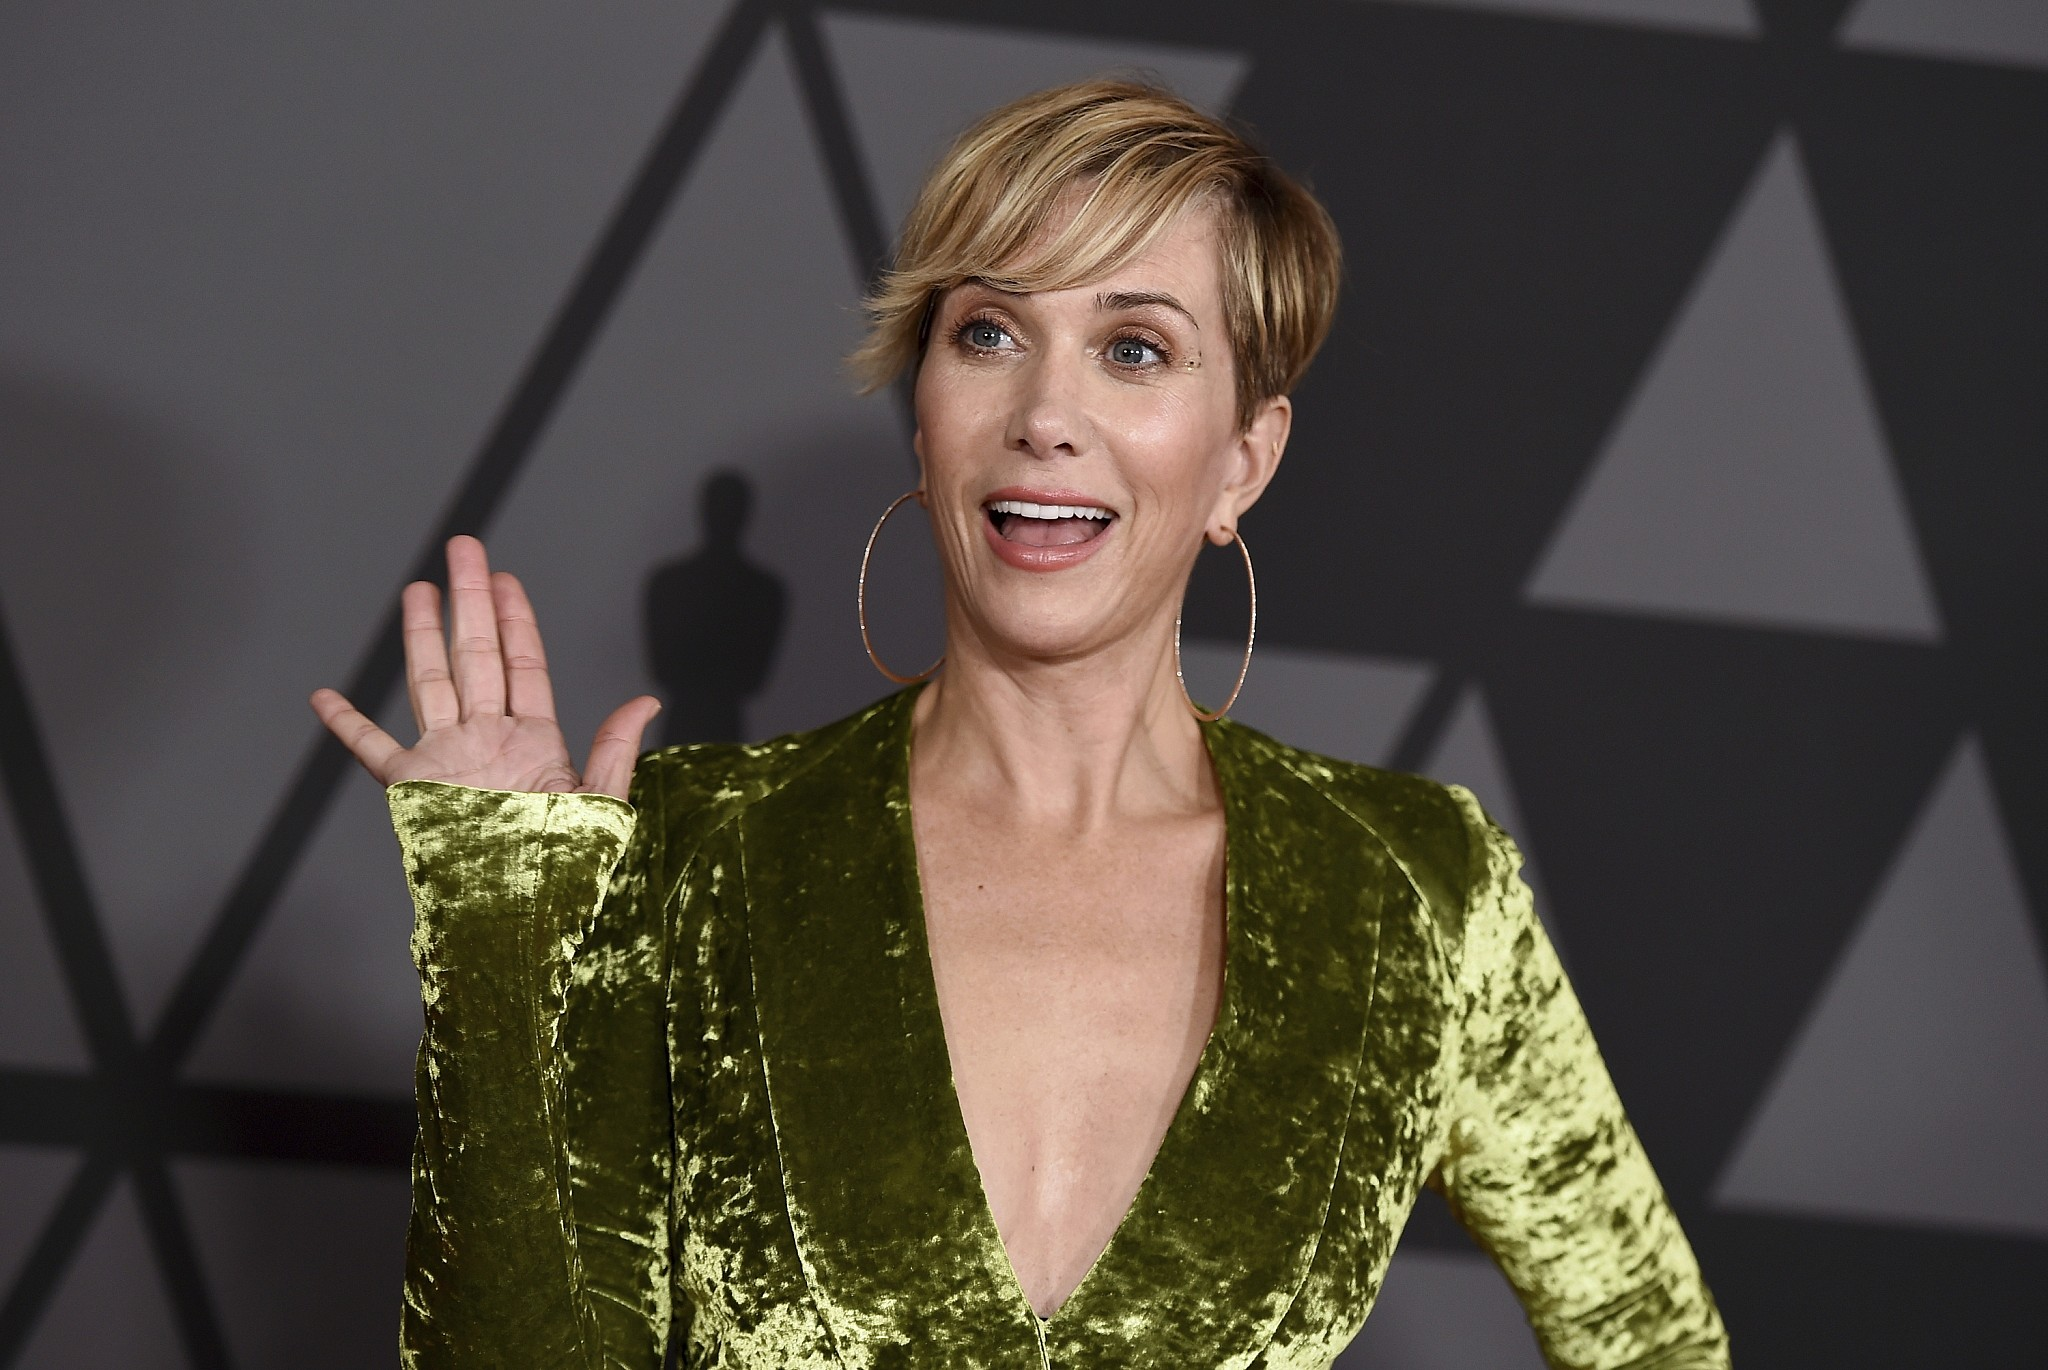 Kristen Wiig arrives at the 9th annual Governors Awards at the Dolby Ballroom